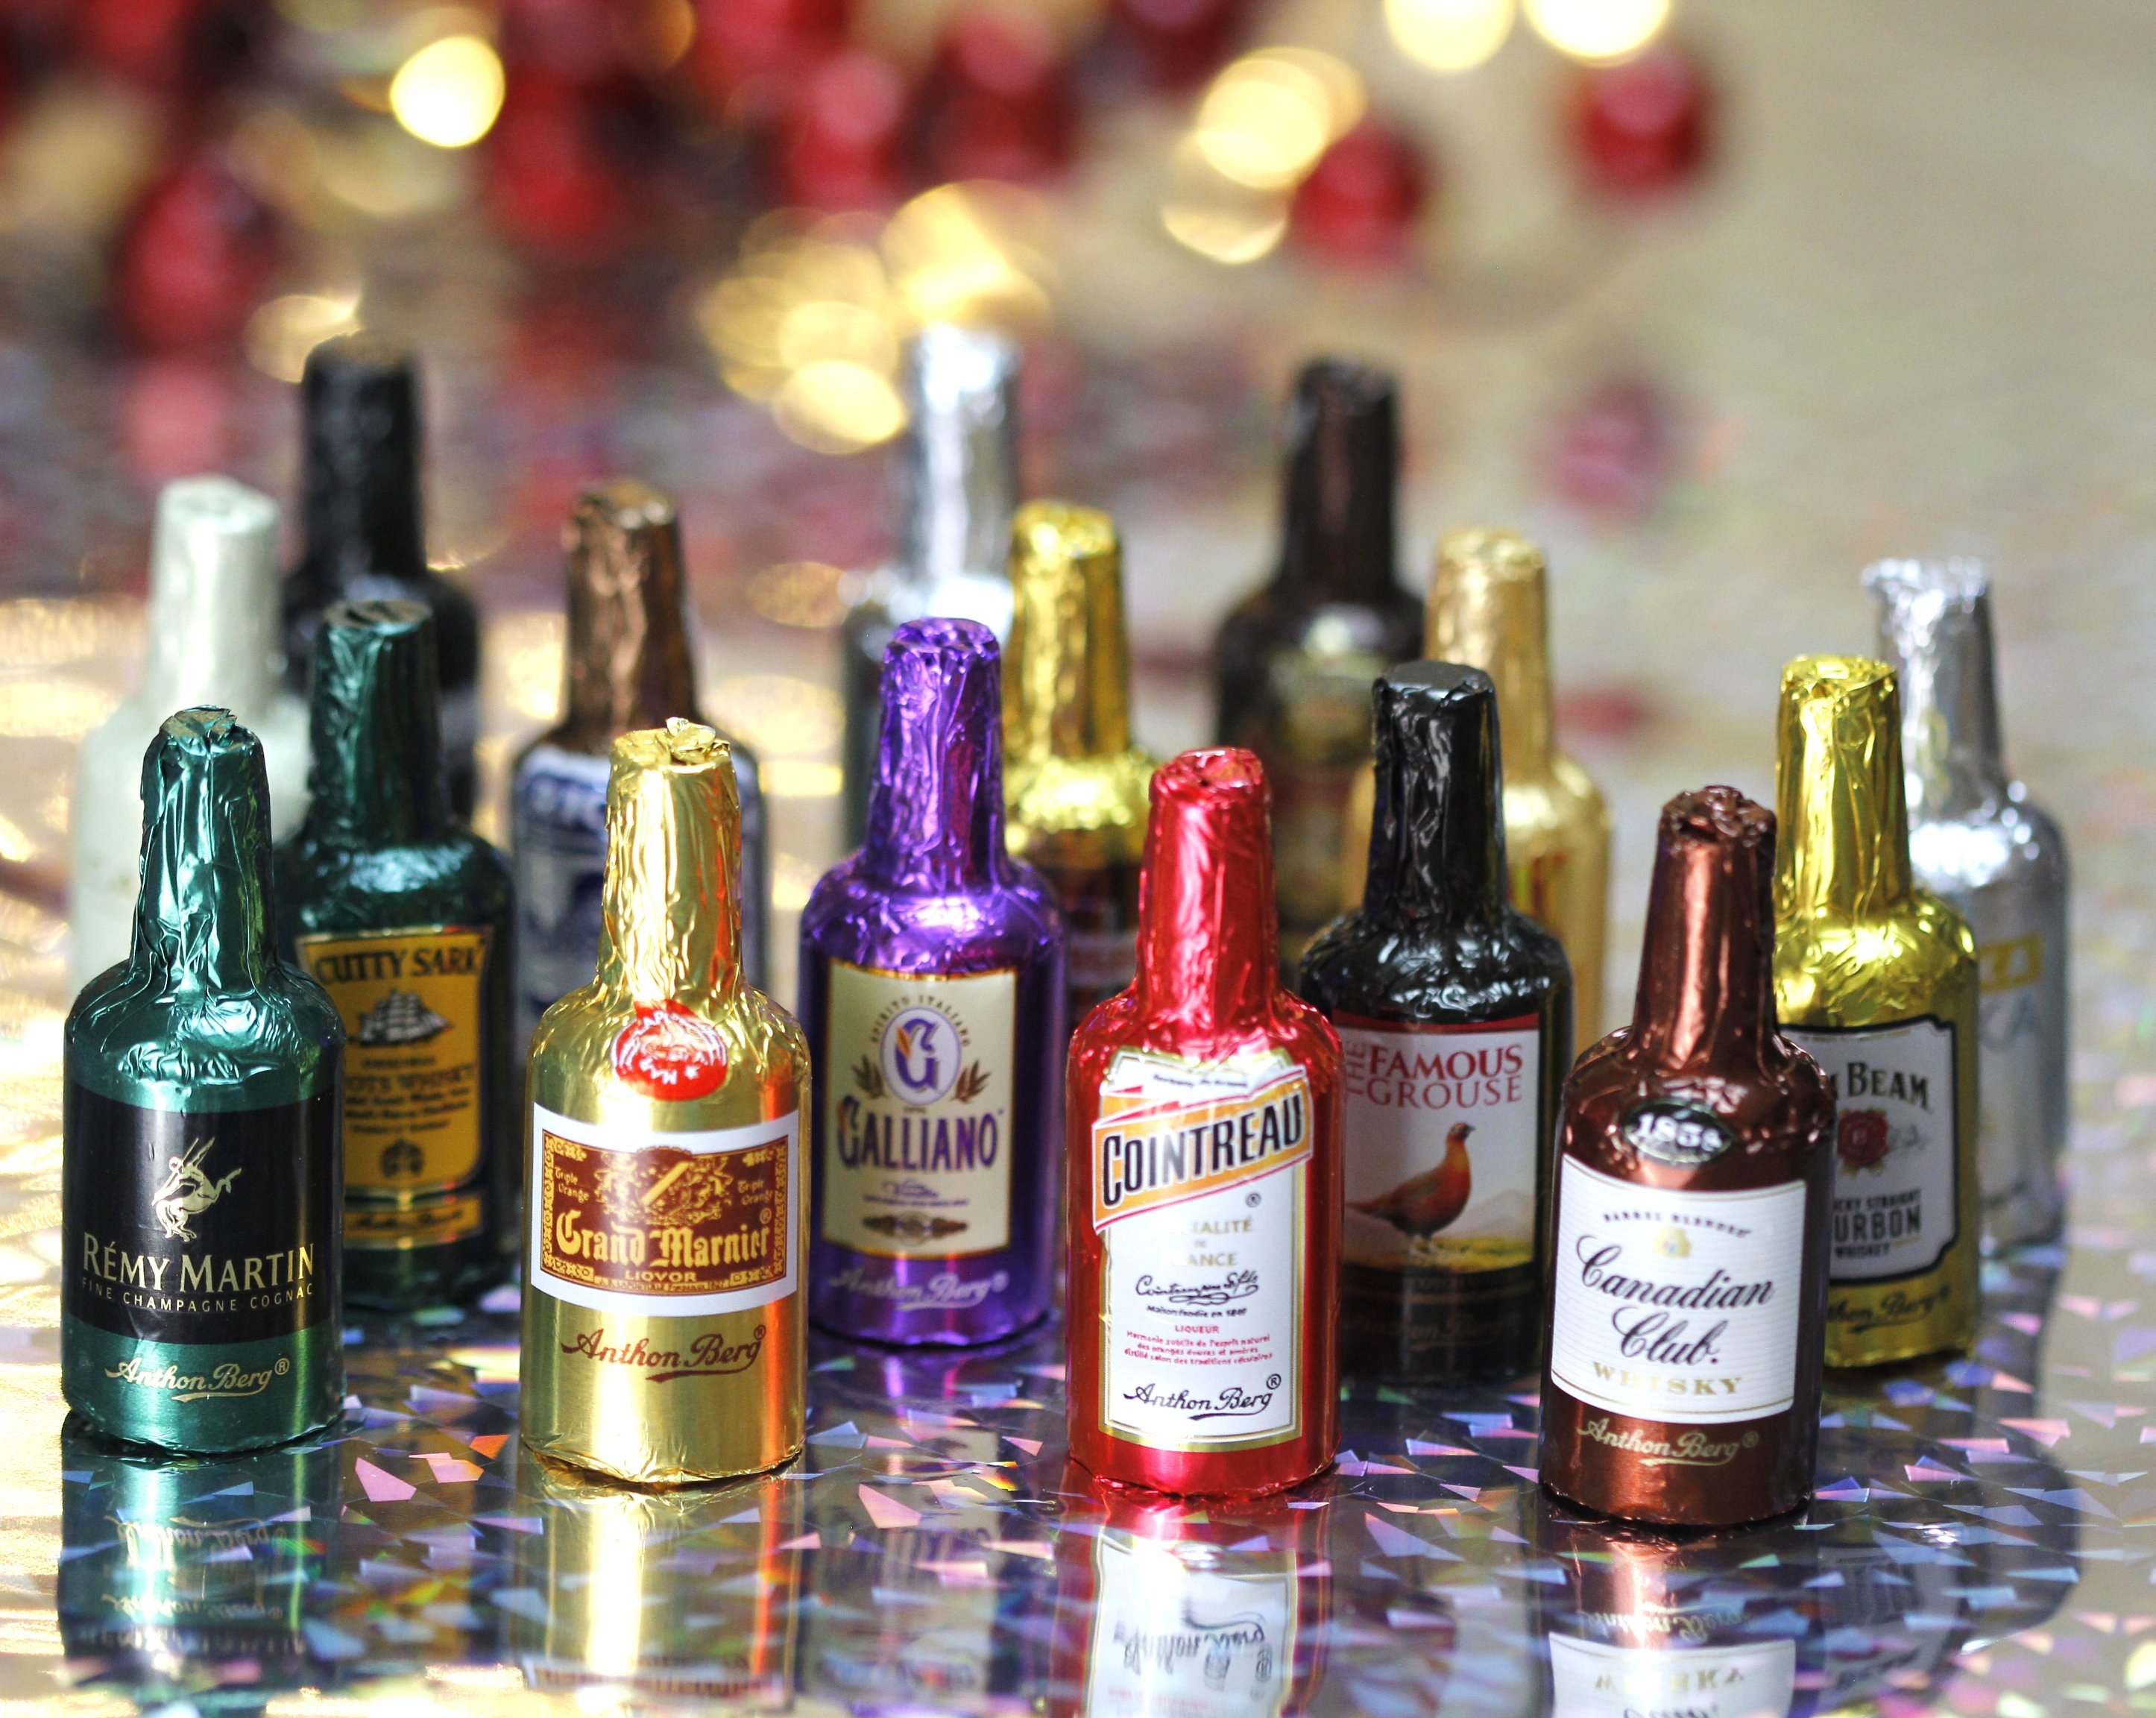 Sweets from out of the country | Anthon Berg Liquor Chocolates